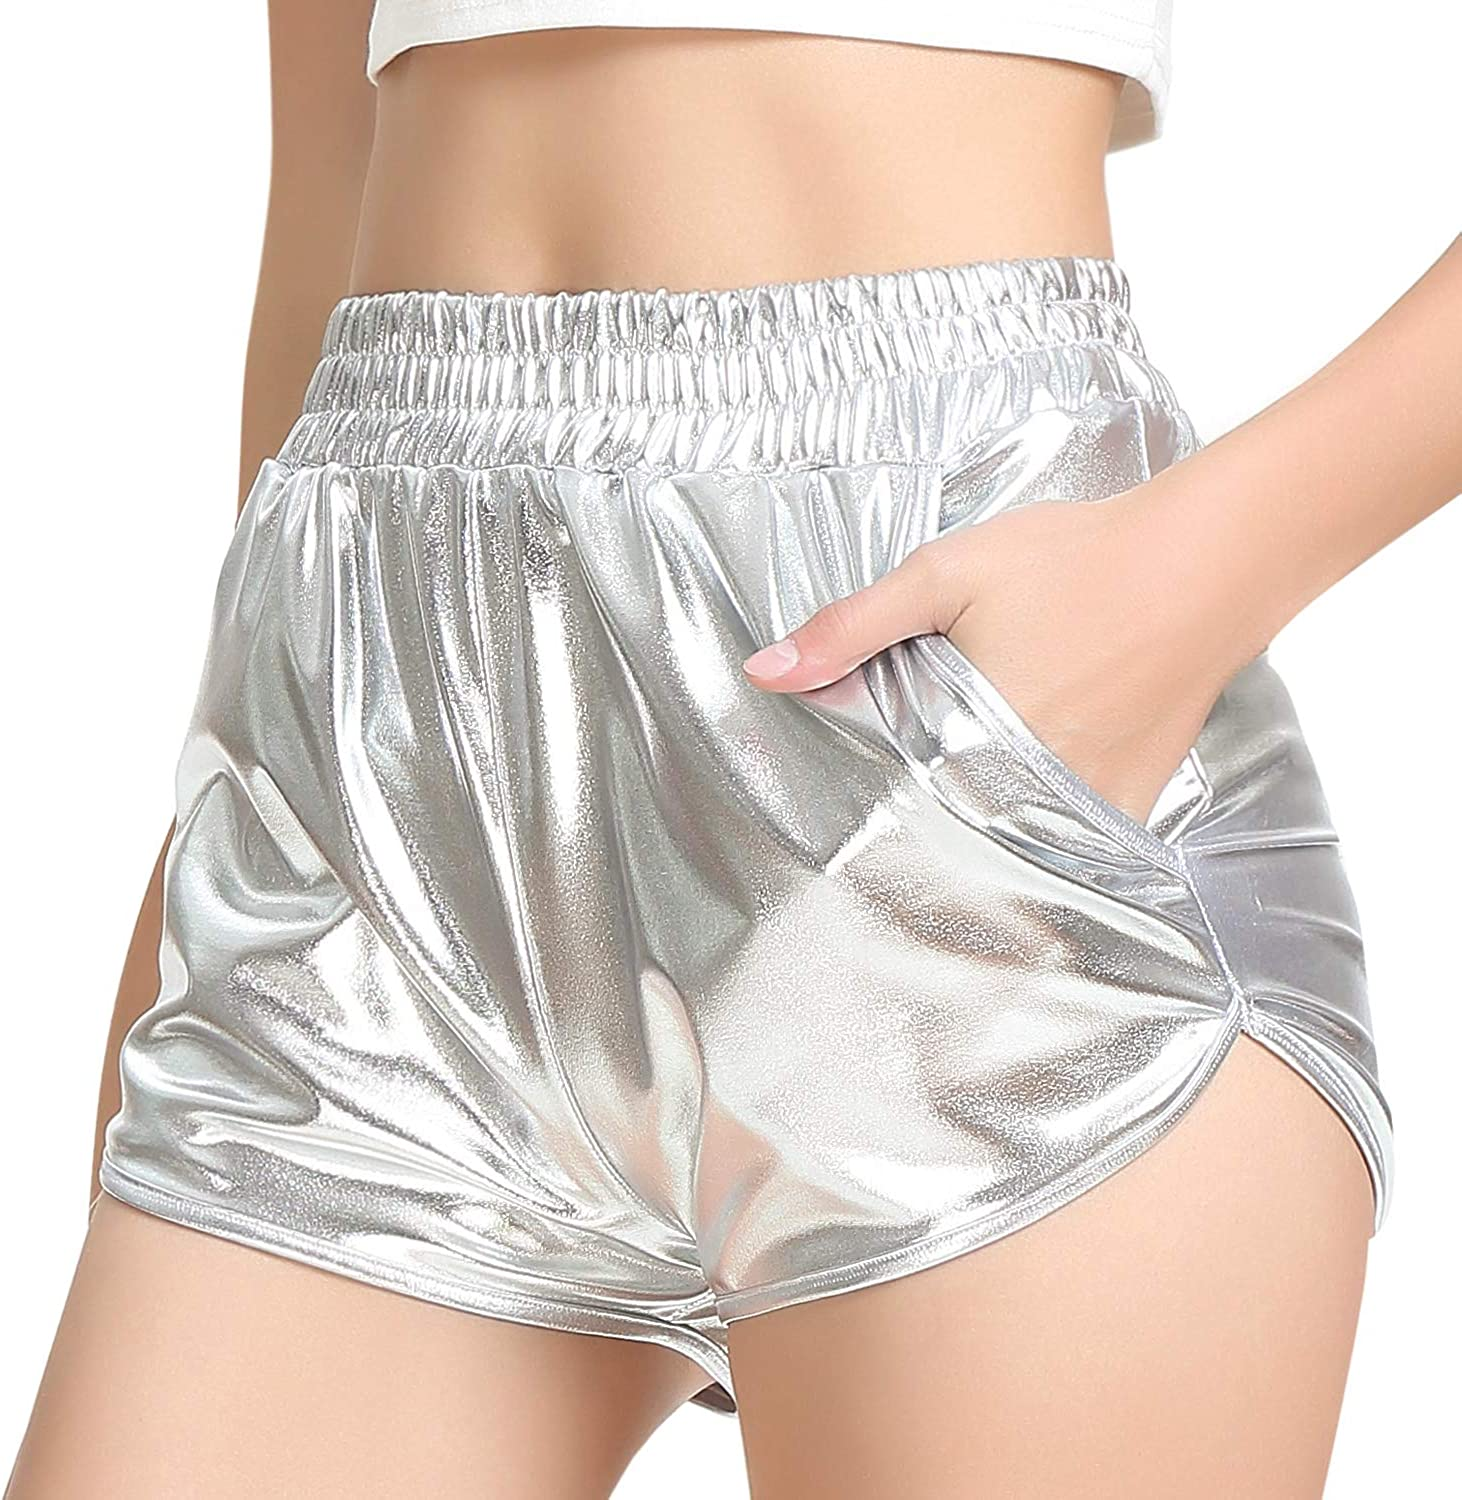 Perfashion Girls Metallic Shorts Sparkly Shiny Hot Pants Gold//Silver//Pink Outfit